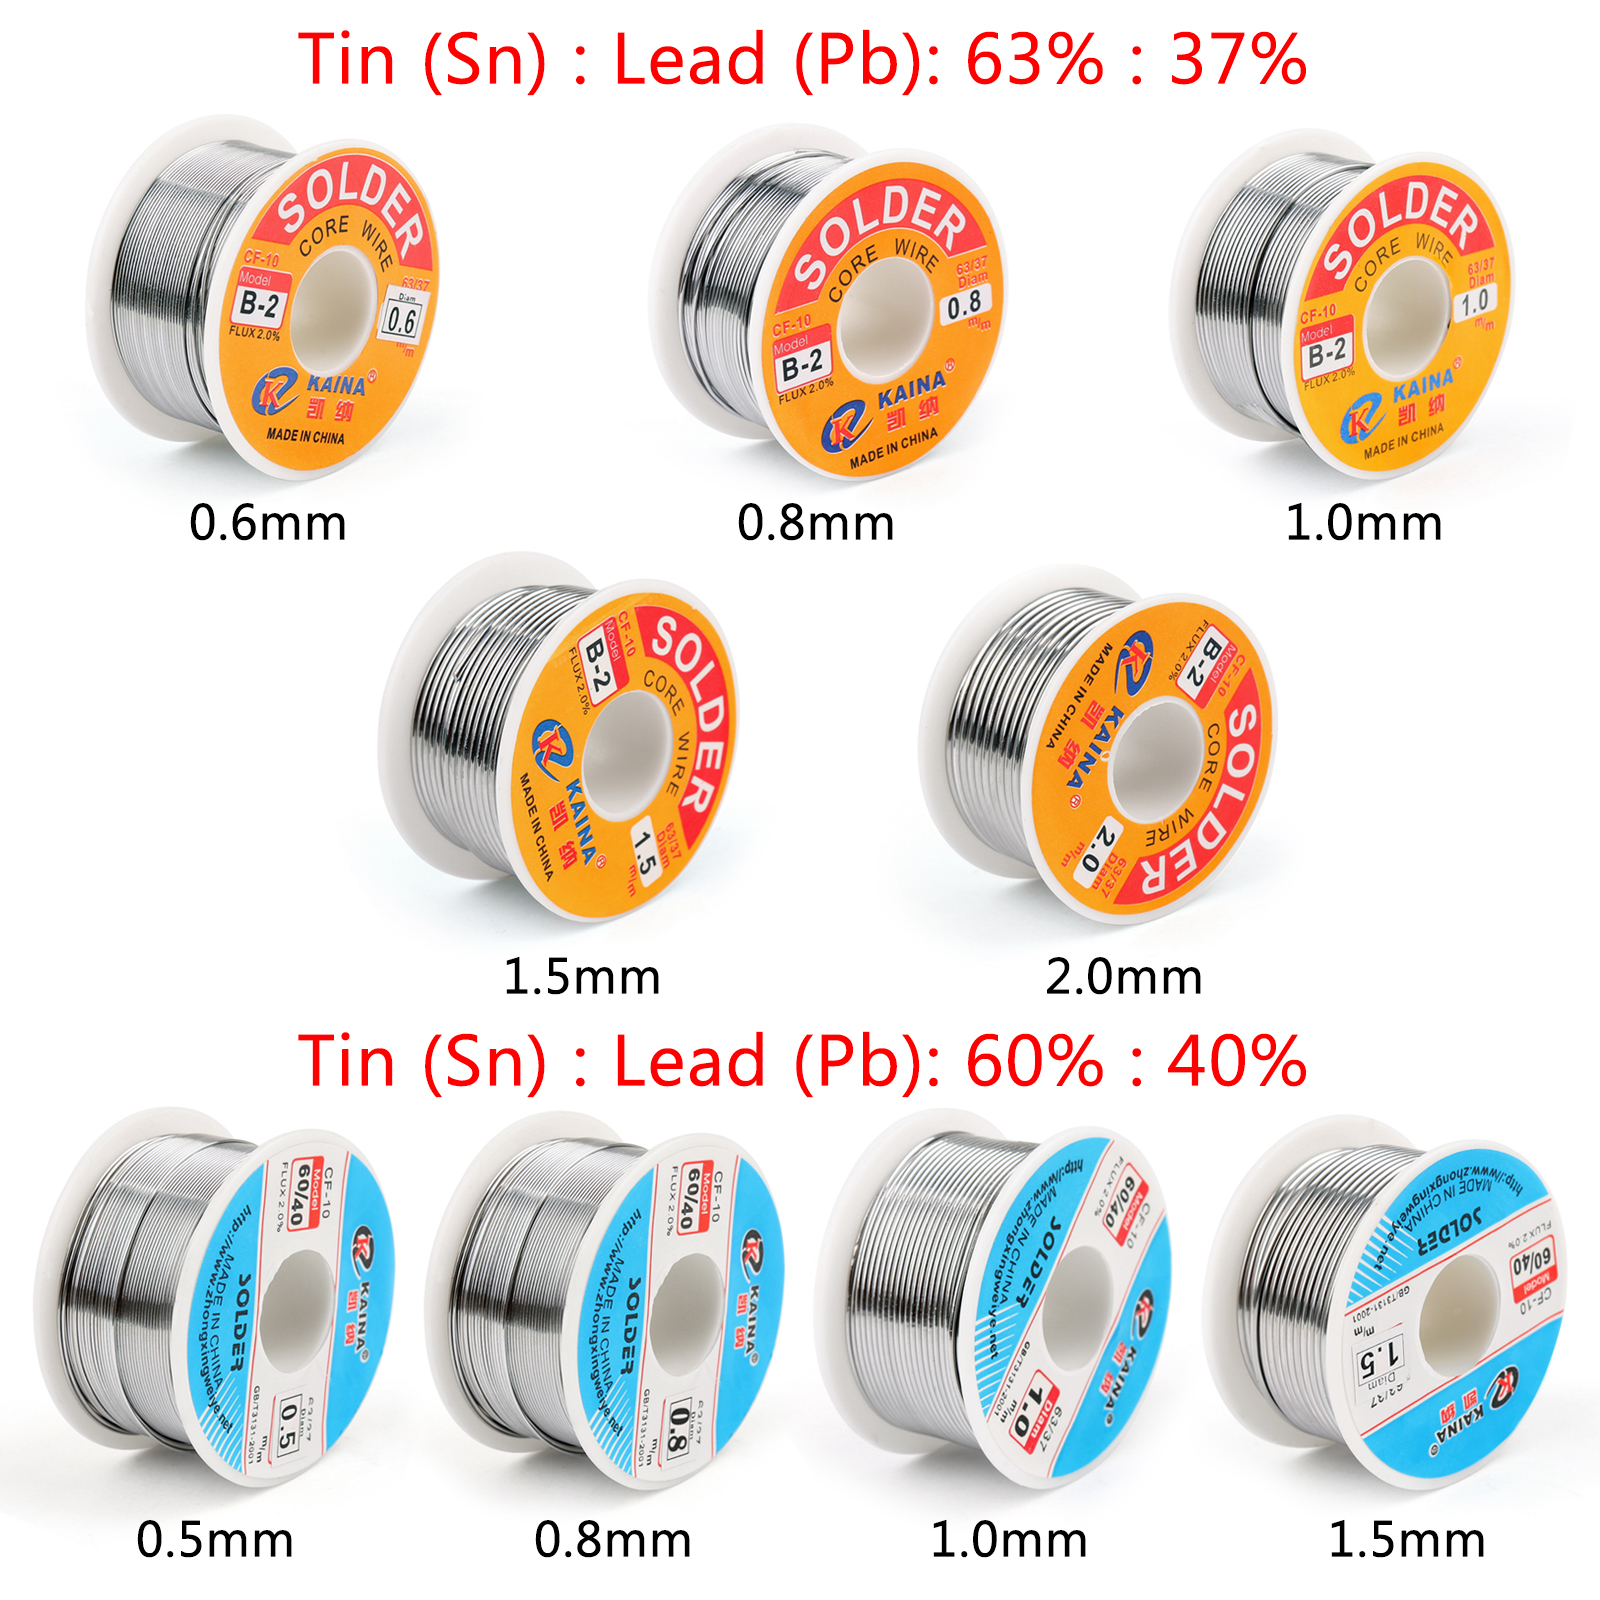 Areyourshop 100g 60/40 63/37 0.5mm / 0.8mm  / 1.0mm / 1.5mm Rosin Tin Lead Solder Wire Welding With 2% Flux For Soldering